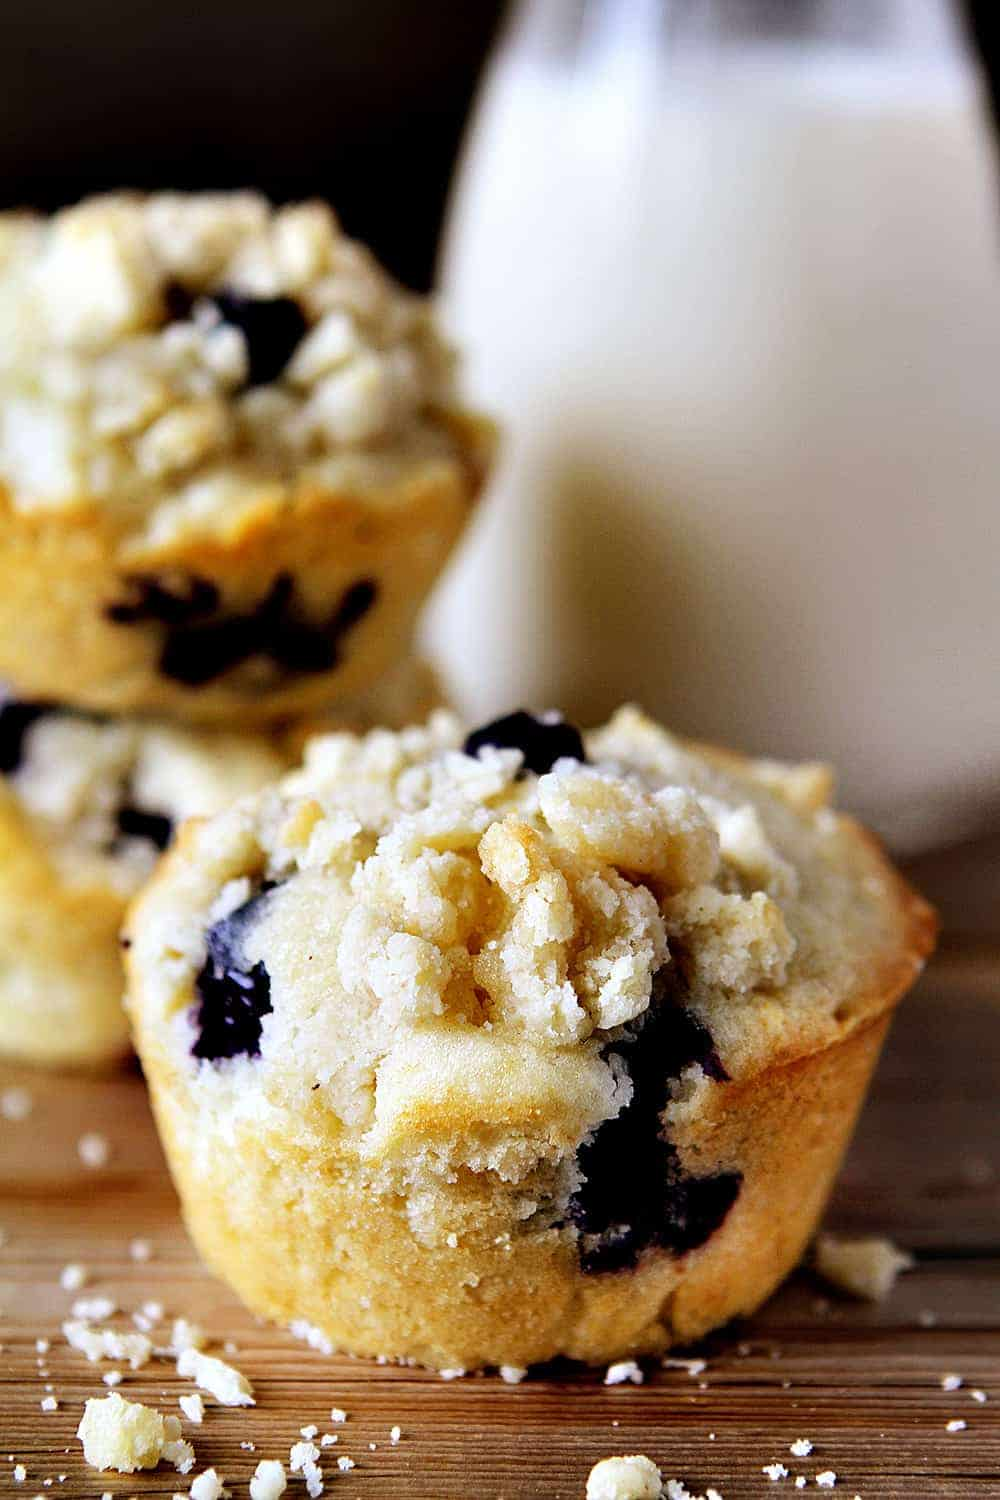 Blueberry Pie Muffins on Wood Cutting Board